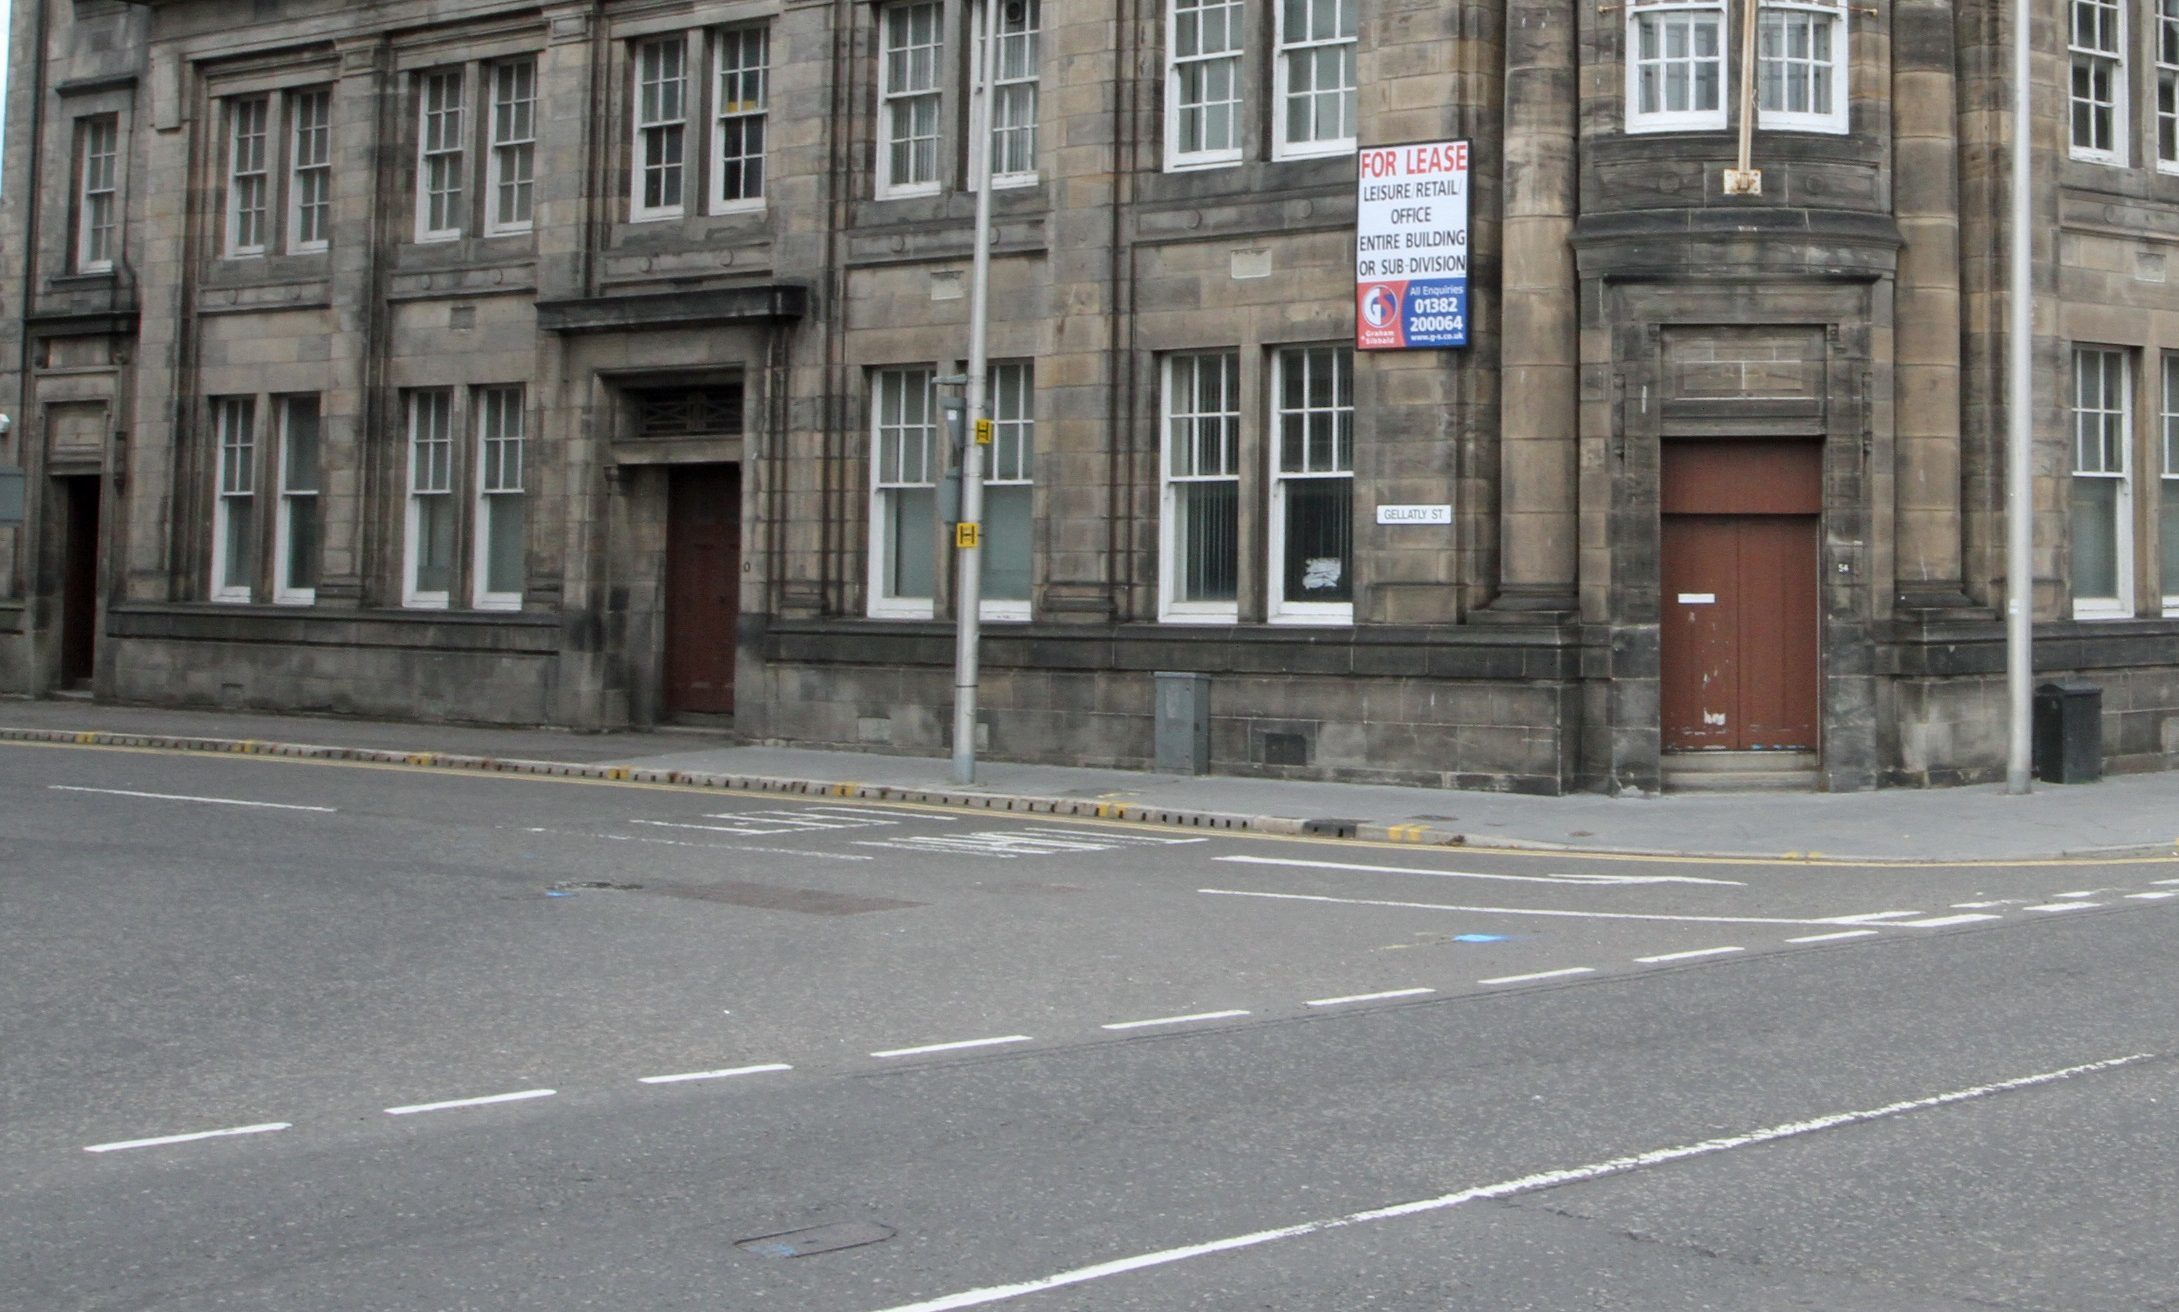 The junction of Gellatly Street and Dock Street